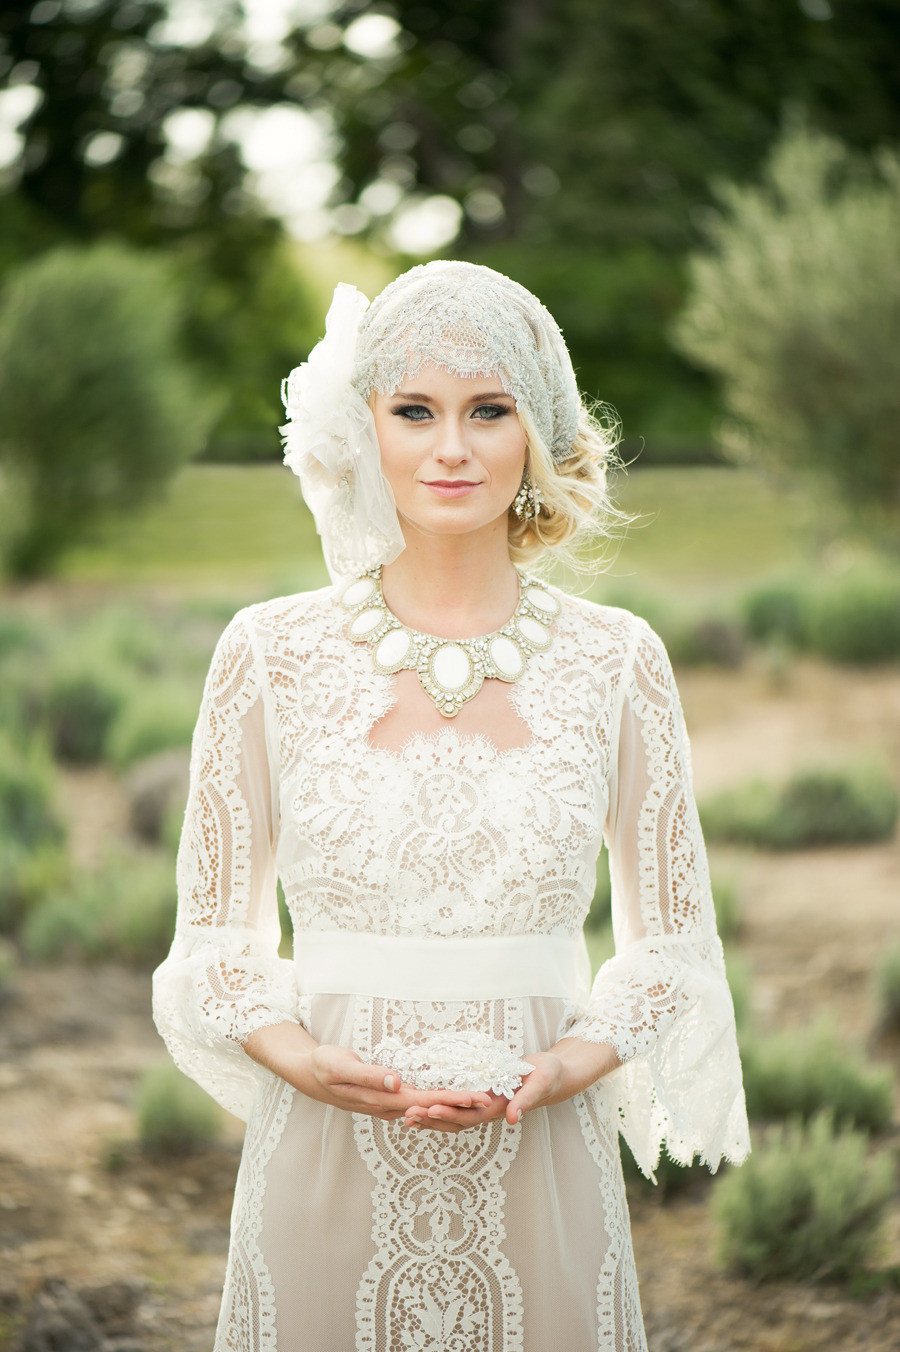 Crochet Wedding Elegant Romantic Crocheted Bride Wedding Day Style Of Beautiful 41 Pics Crochet Wedding